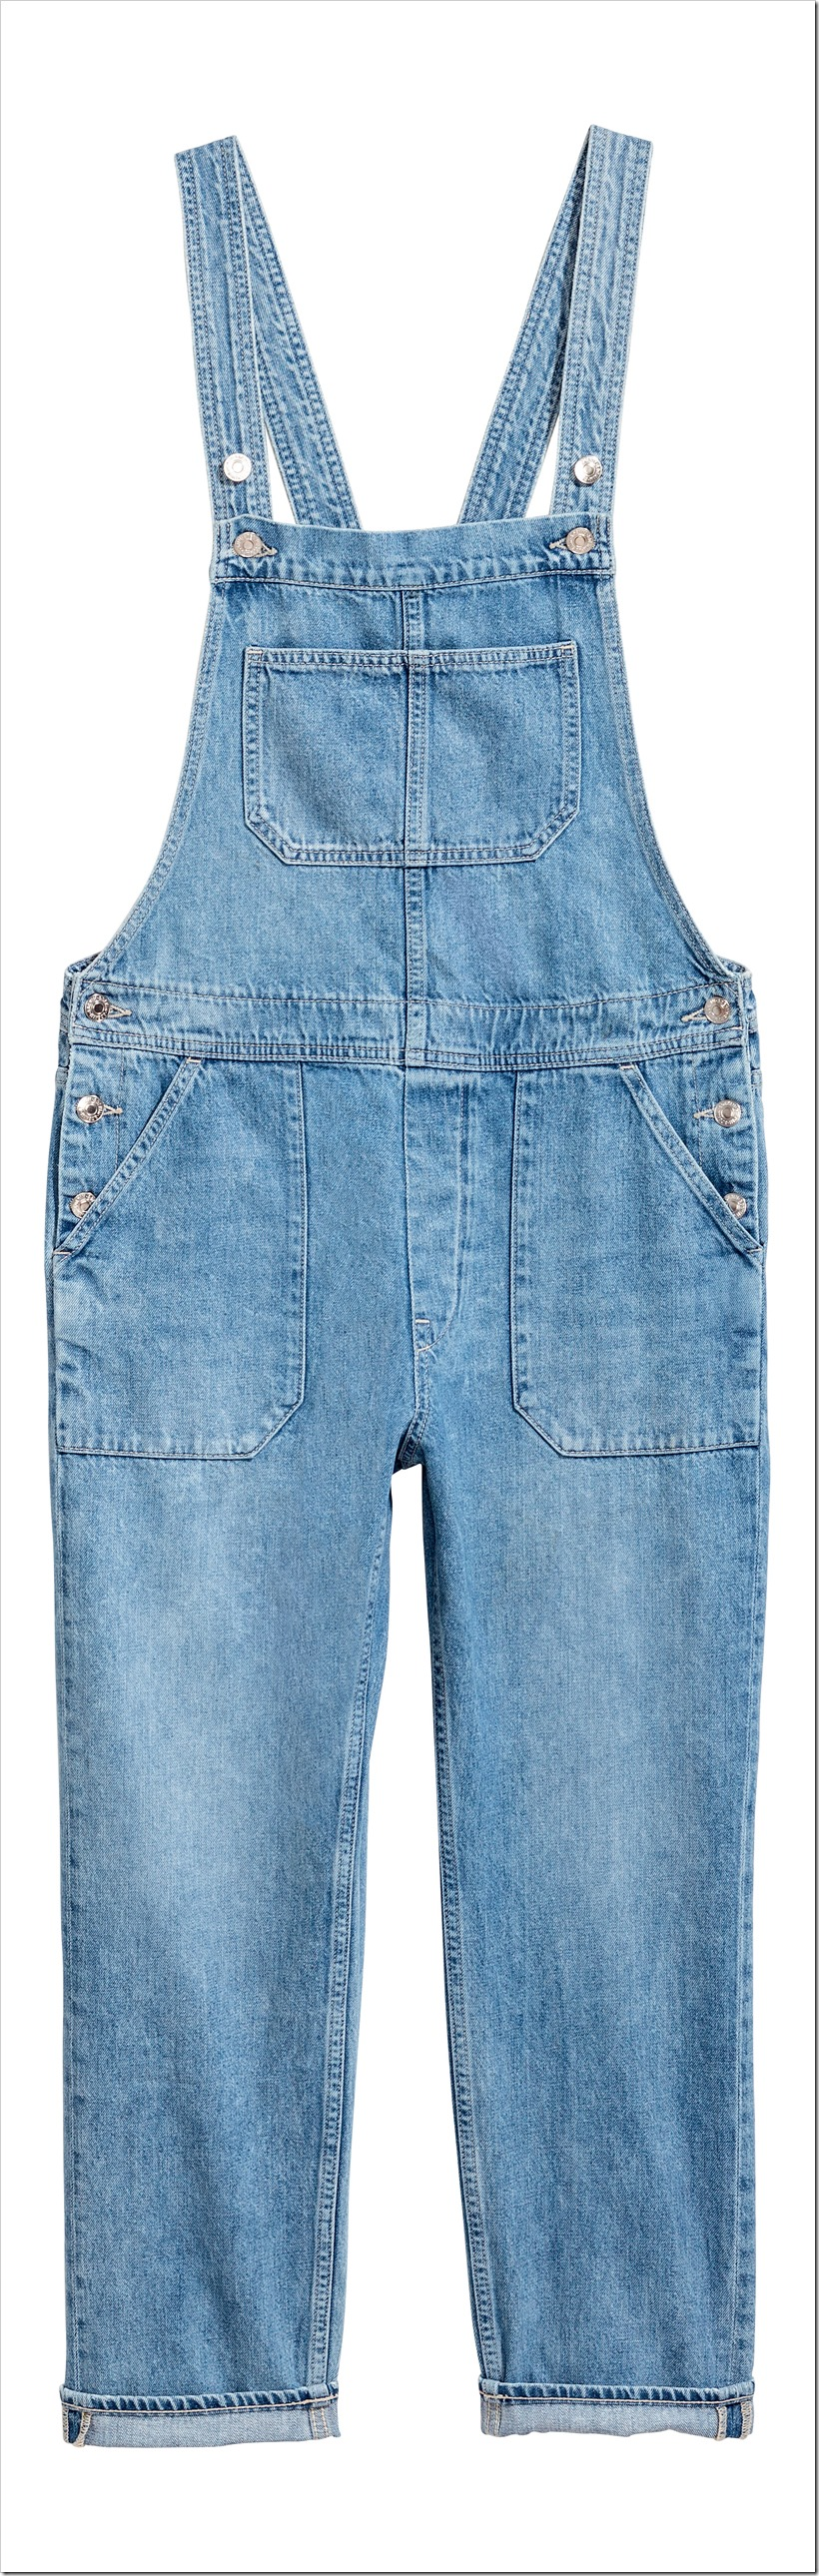 H&M Denim United Unisex Collection | Denimsandjeans.com